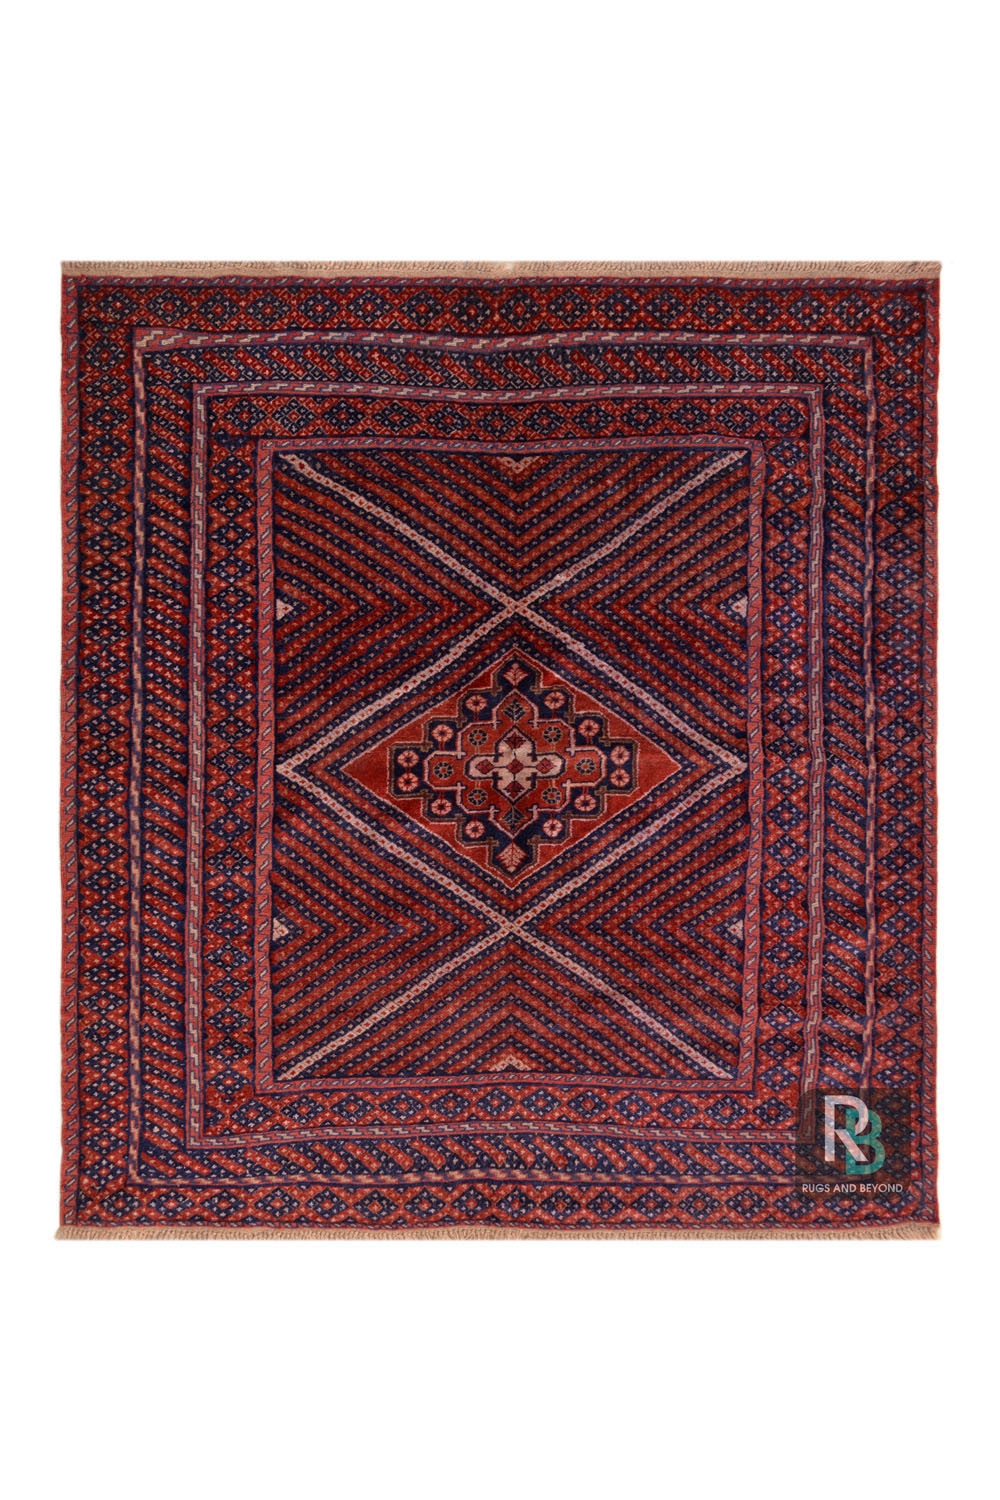 Buy Kilim Medallion Turkish Kilim Rugs To Add Coziness To